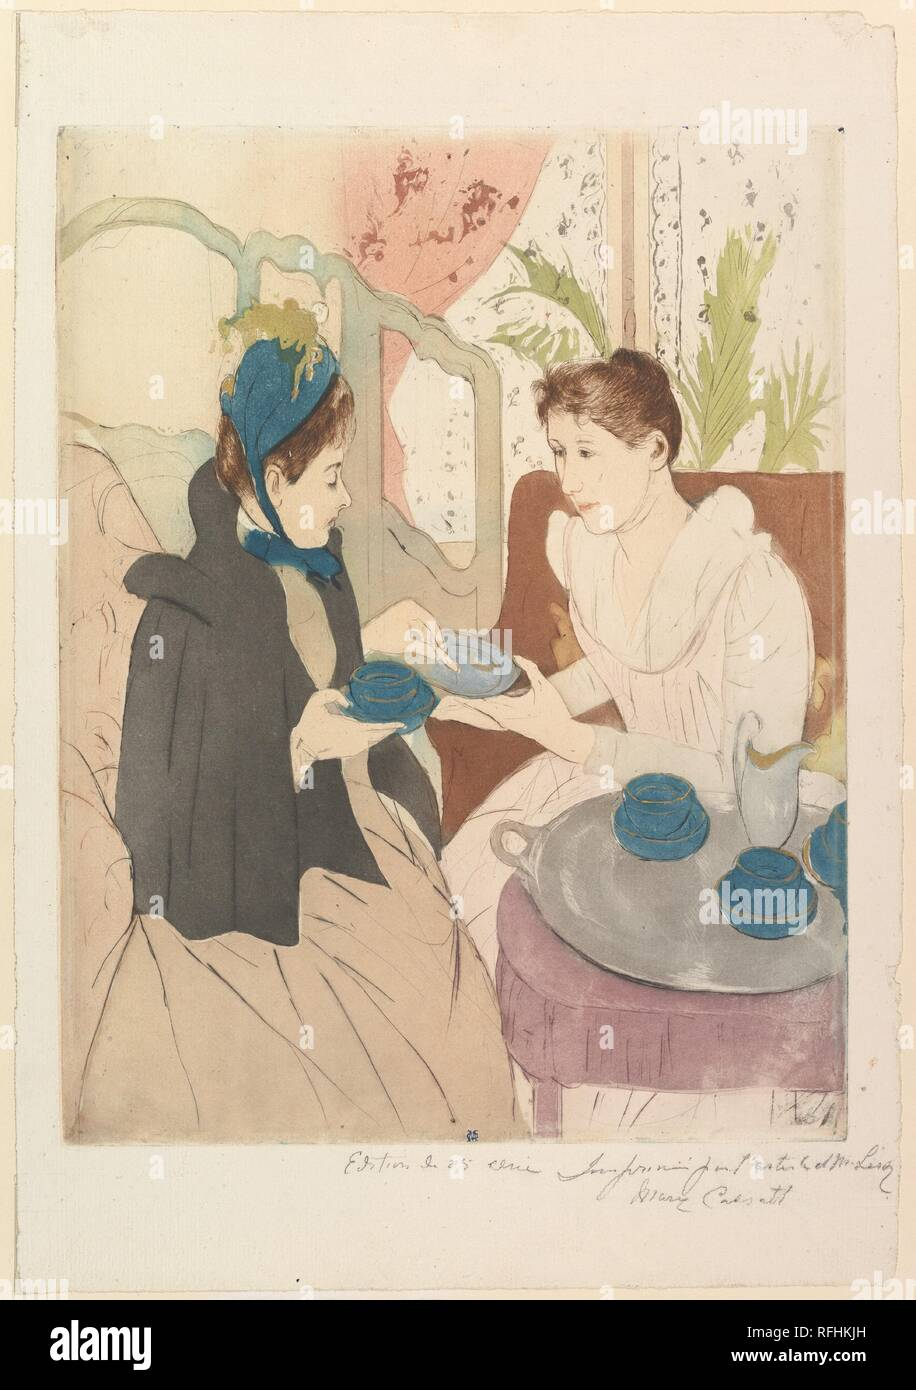 Afternoon Tea Party. Artist: Mary Cassatt (American, Pittsburgh, Pennsylvania 1844-1926 Le Mesnil-Théribus, Oise). Dimensions: plate: 13 5/8 x 10 1/2 in. (34.6 x 26.7 cm)  sheet: 17 1/16 x 11 3/4 in. (43.3 x 29.8 cm). Date: 1890-91. Museum: Metropolitan Museum of Art, New York, USA. Stock Photo